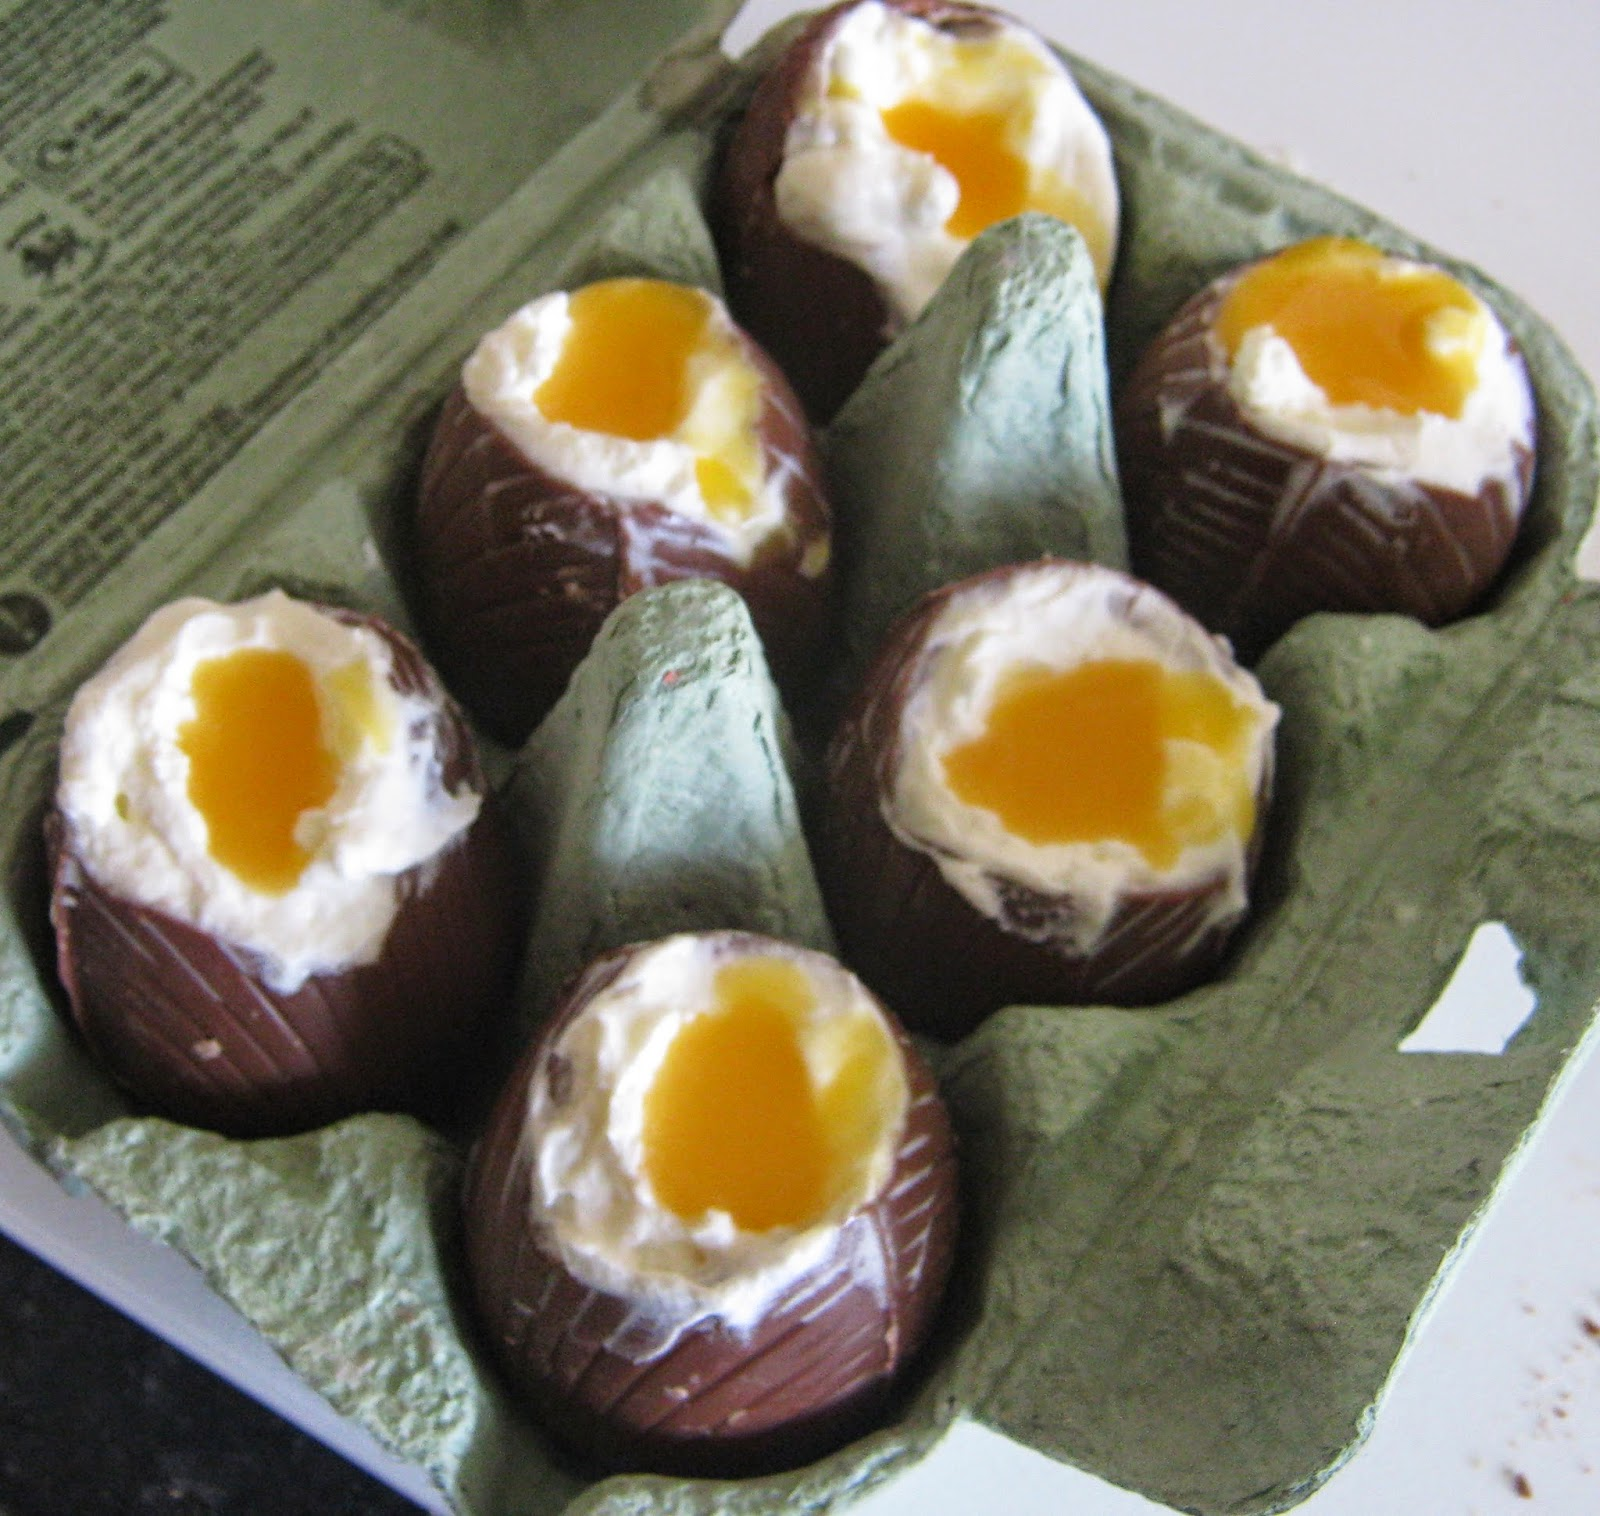 The cheesecake mixture and passion fruit yolks in the chocolate eggs